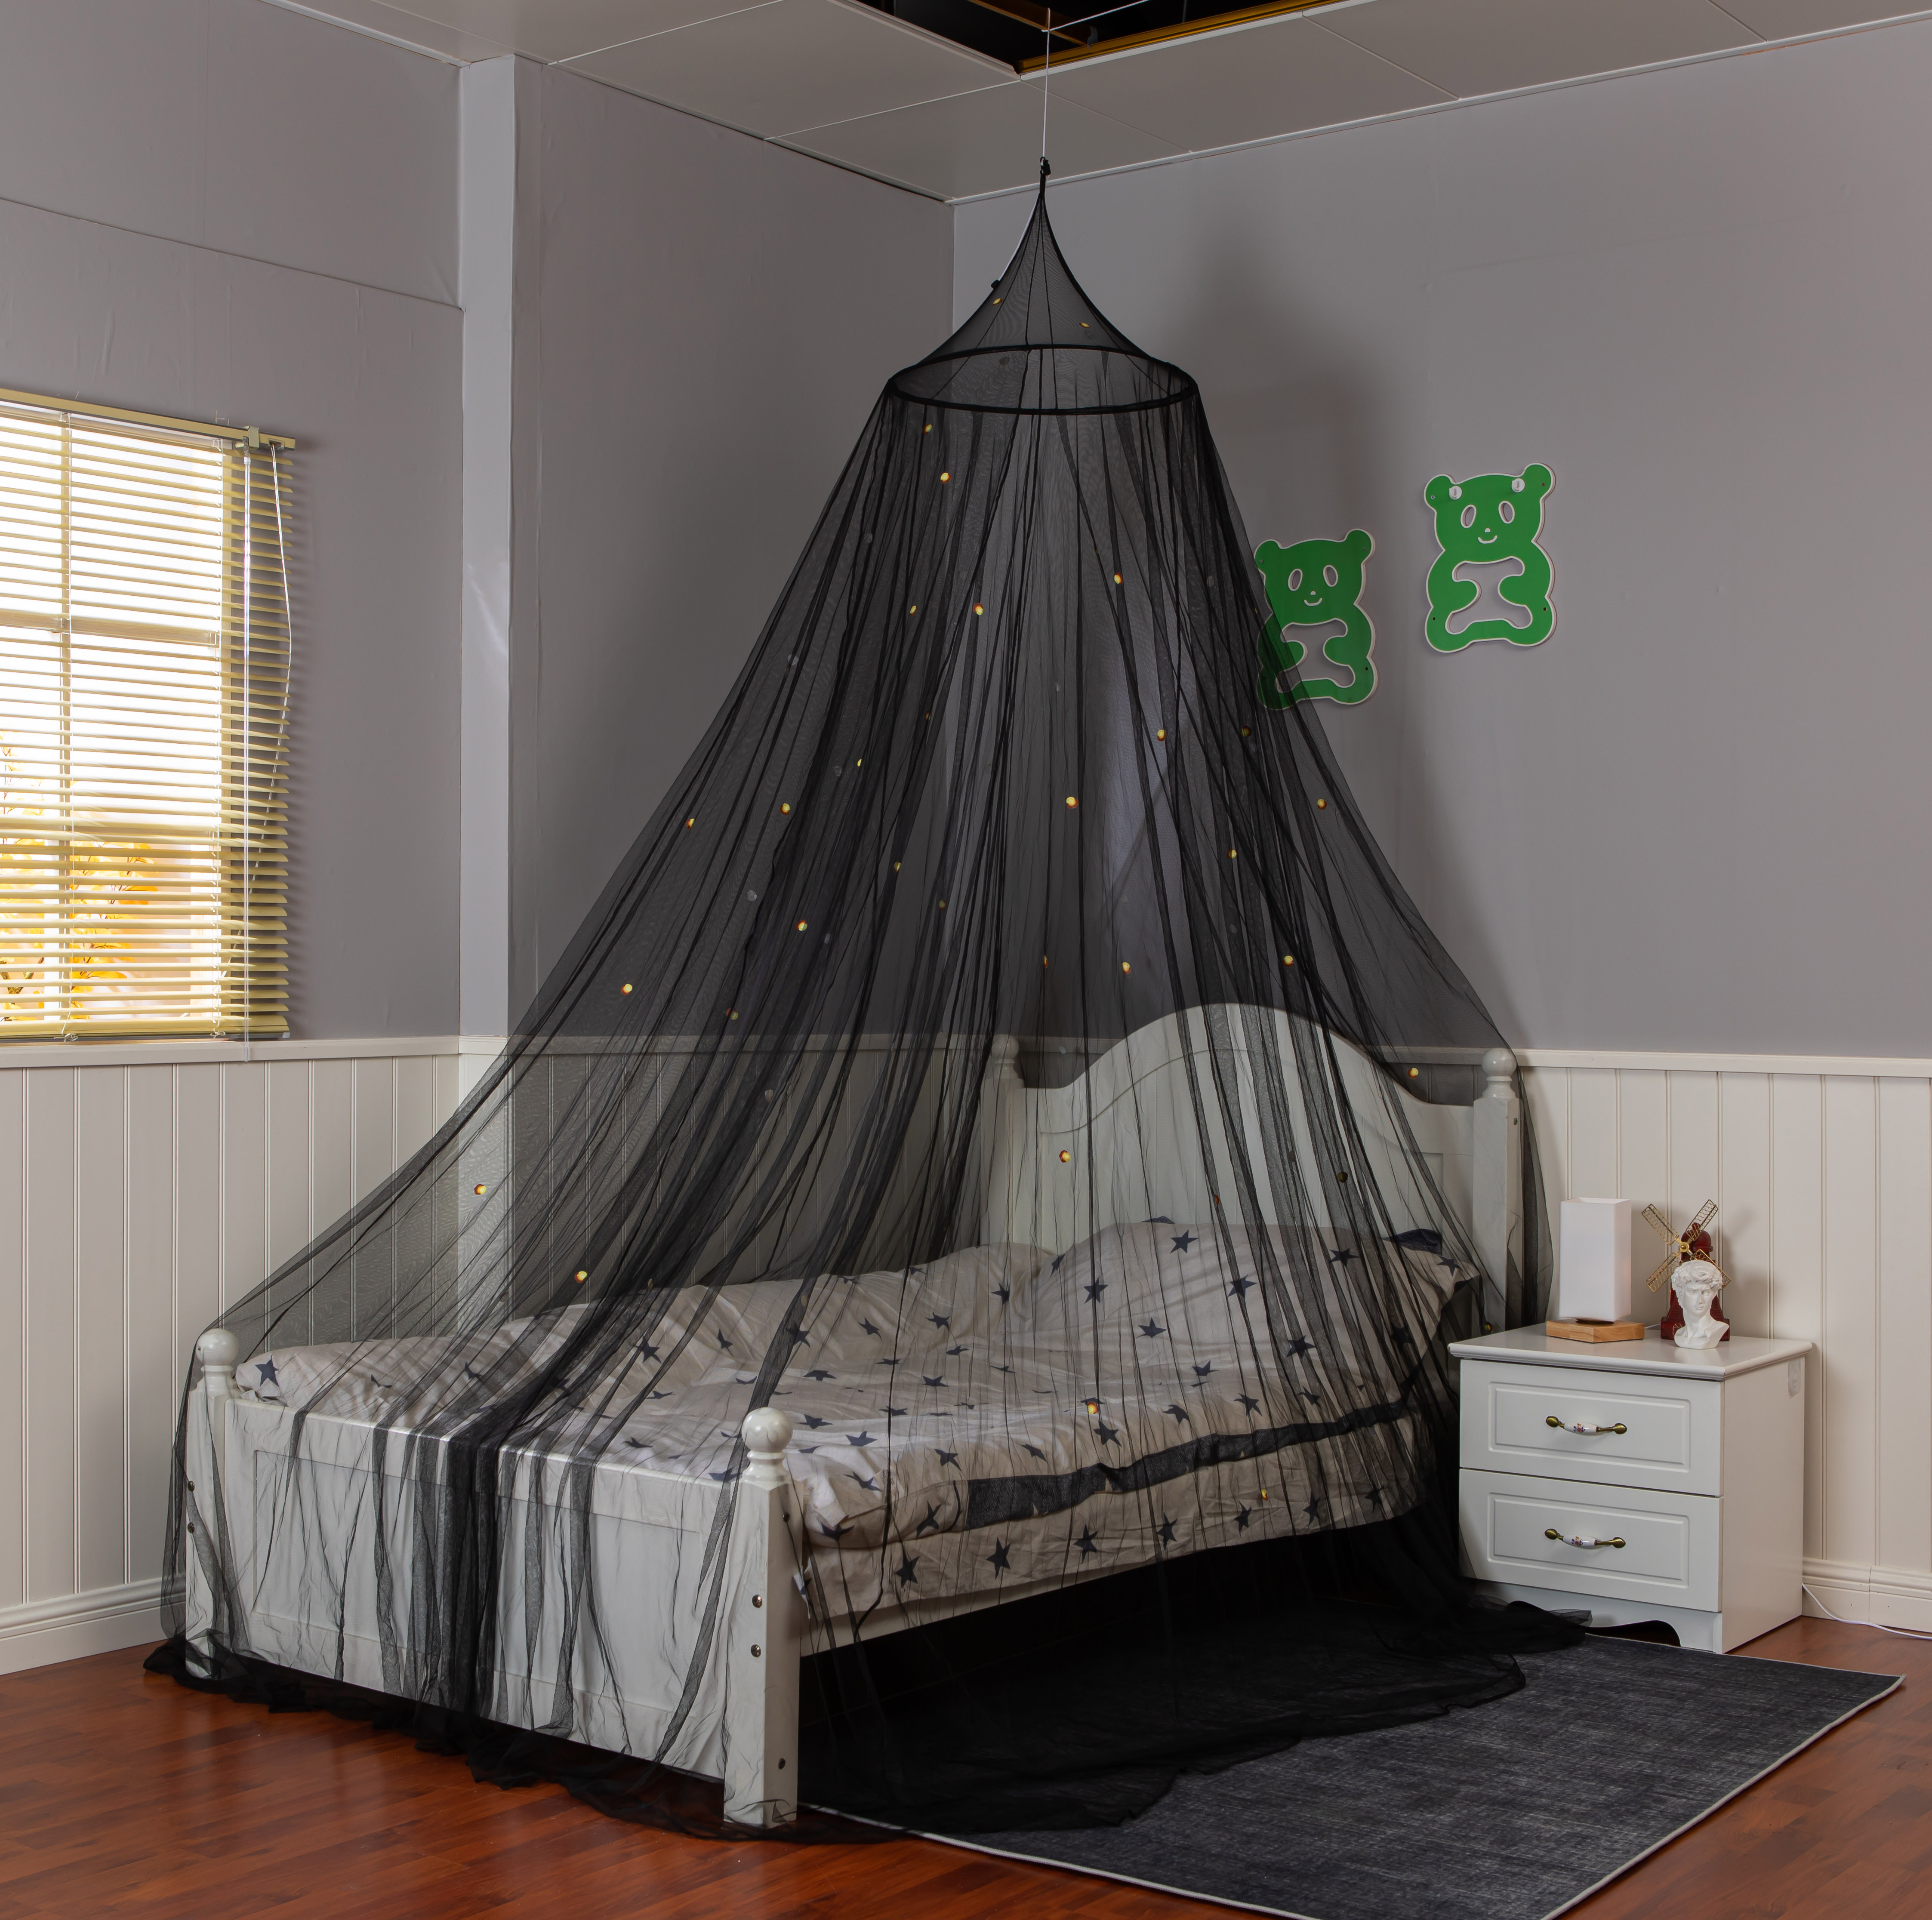 Hanging Easy Set Up Growing In The Dark Firefly Concial Black Mosquito Net Bed Canopy